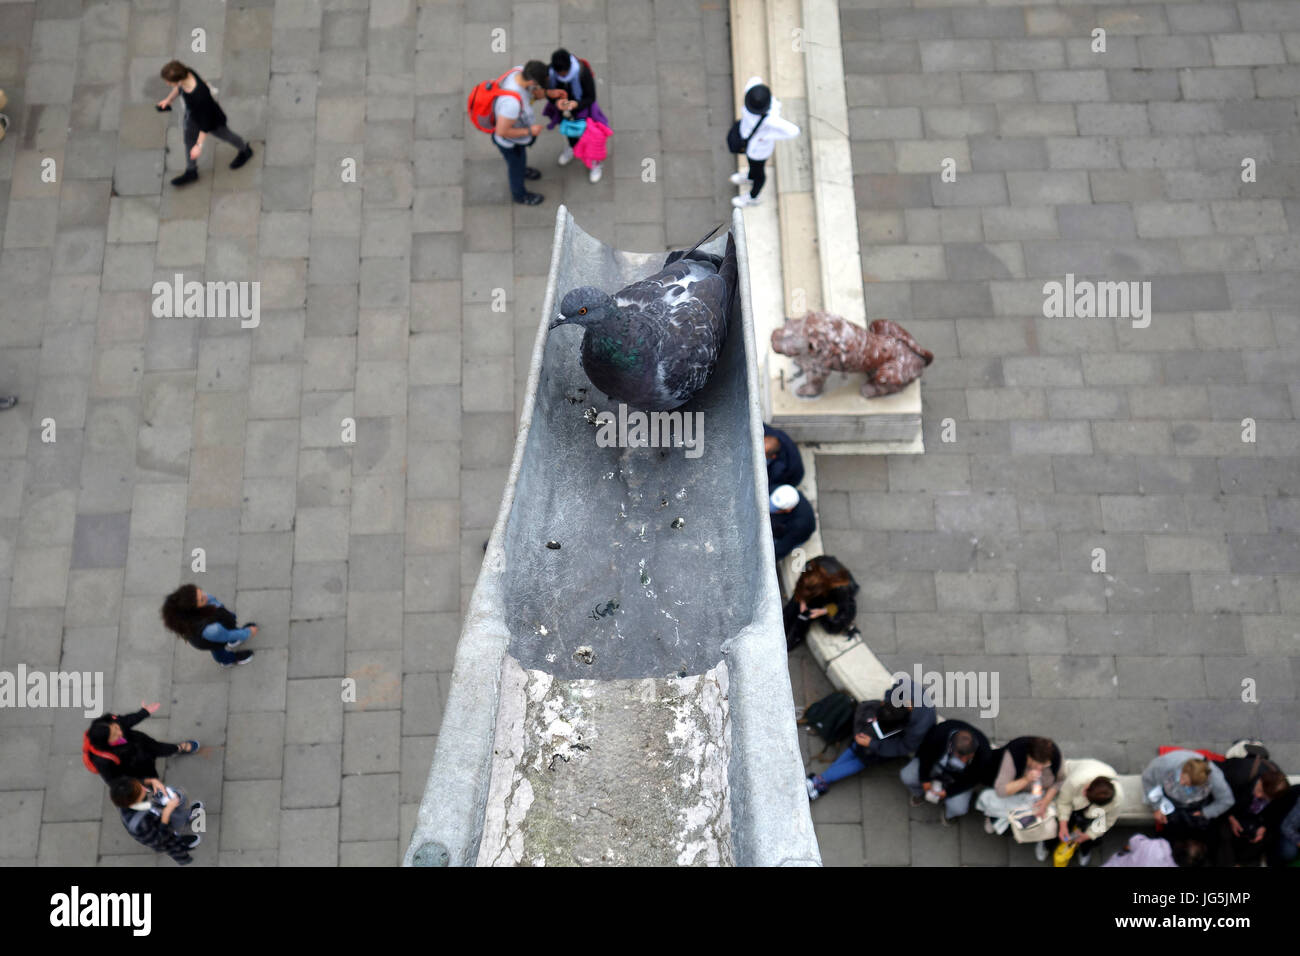 Pigeon in a gutter spout looks over unsuspecting tourists in St. Marks Square, Venice, Italy - Stock Image